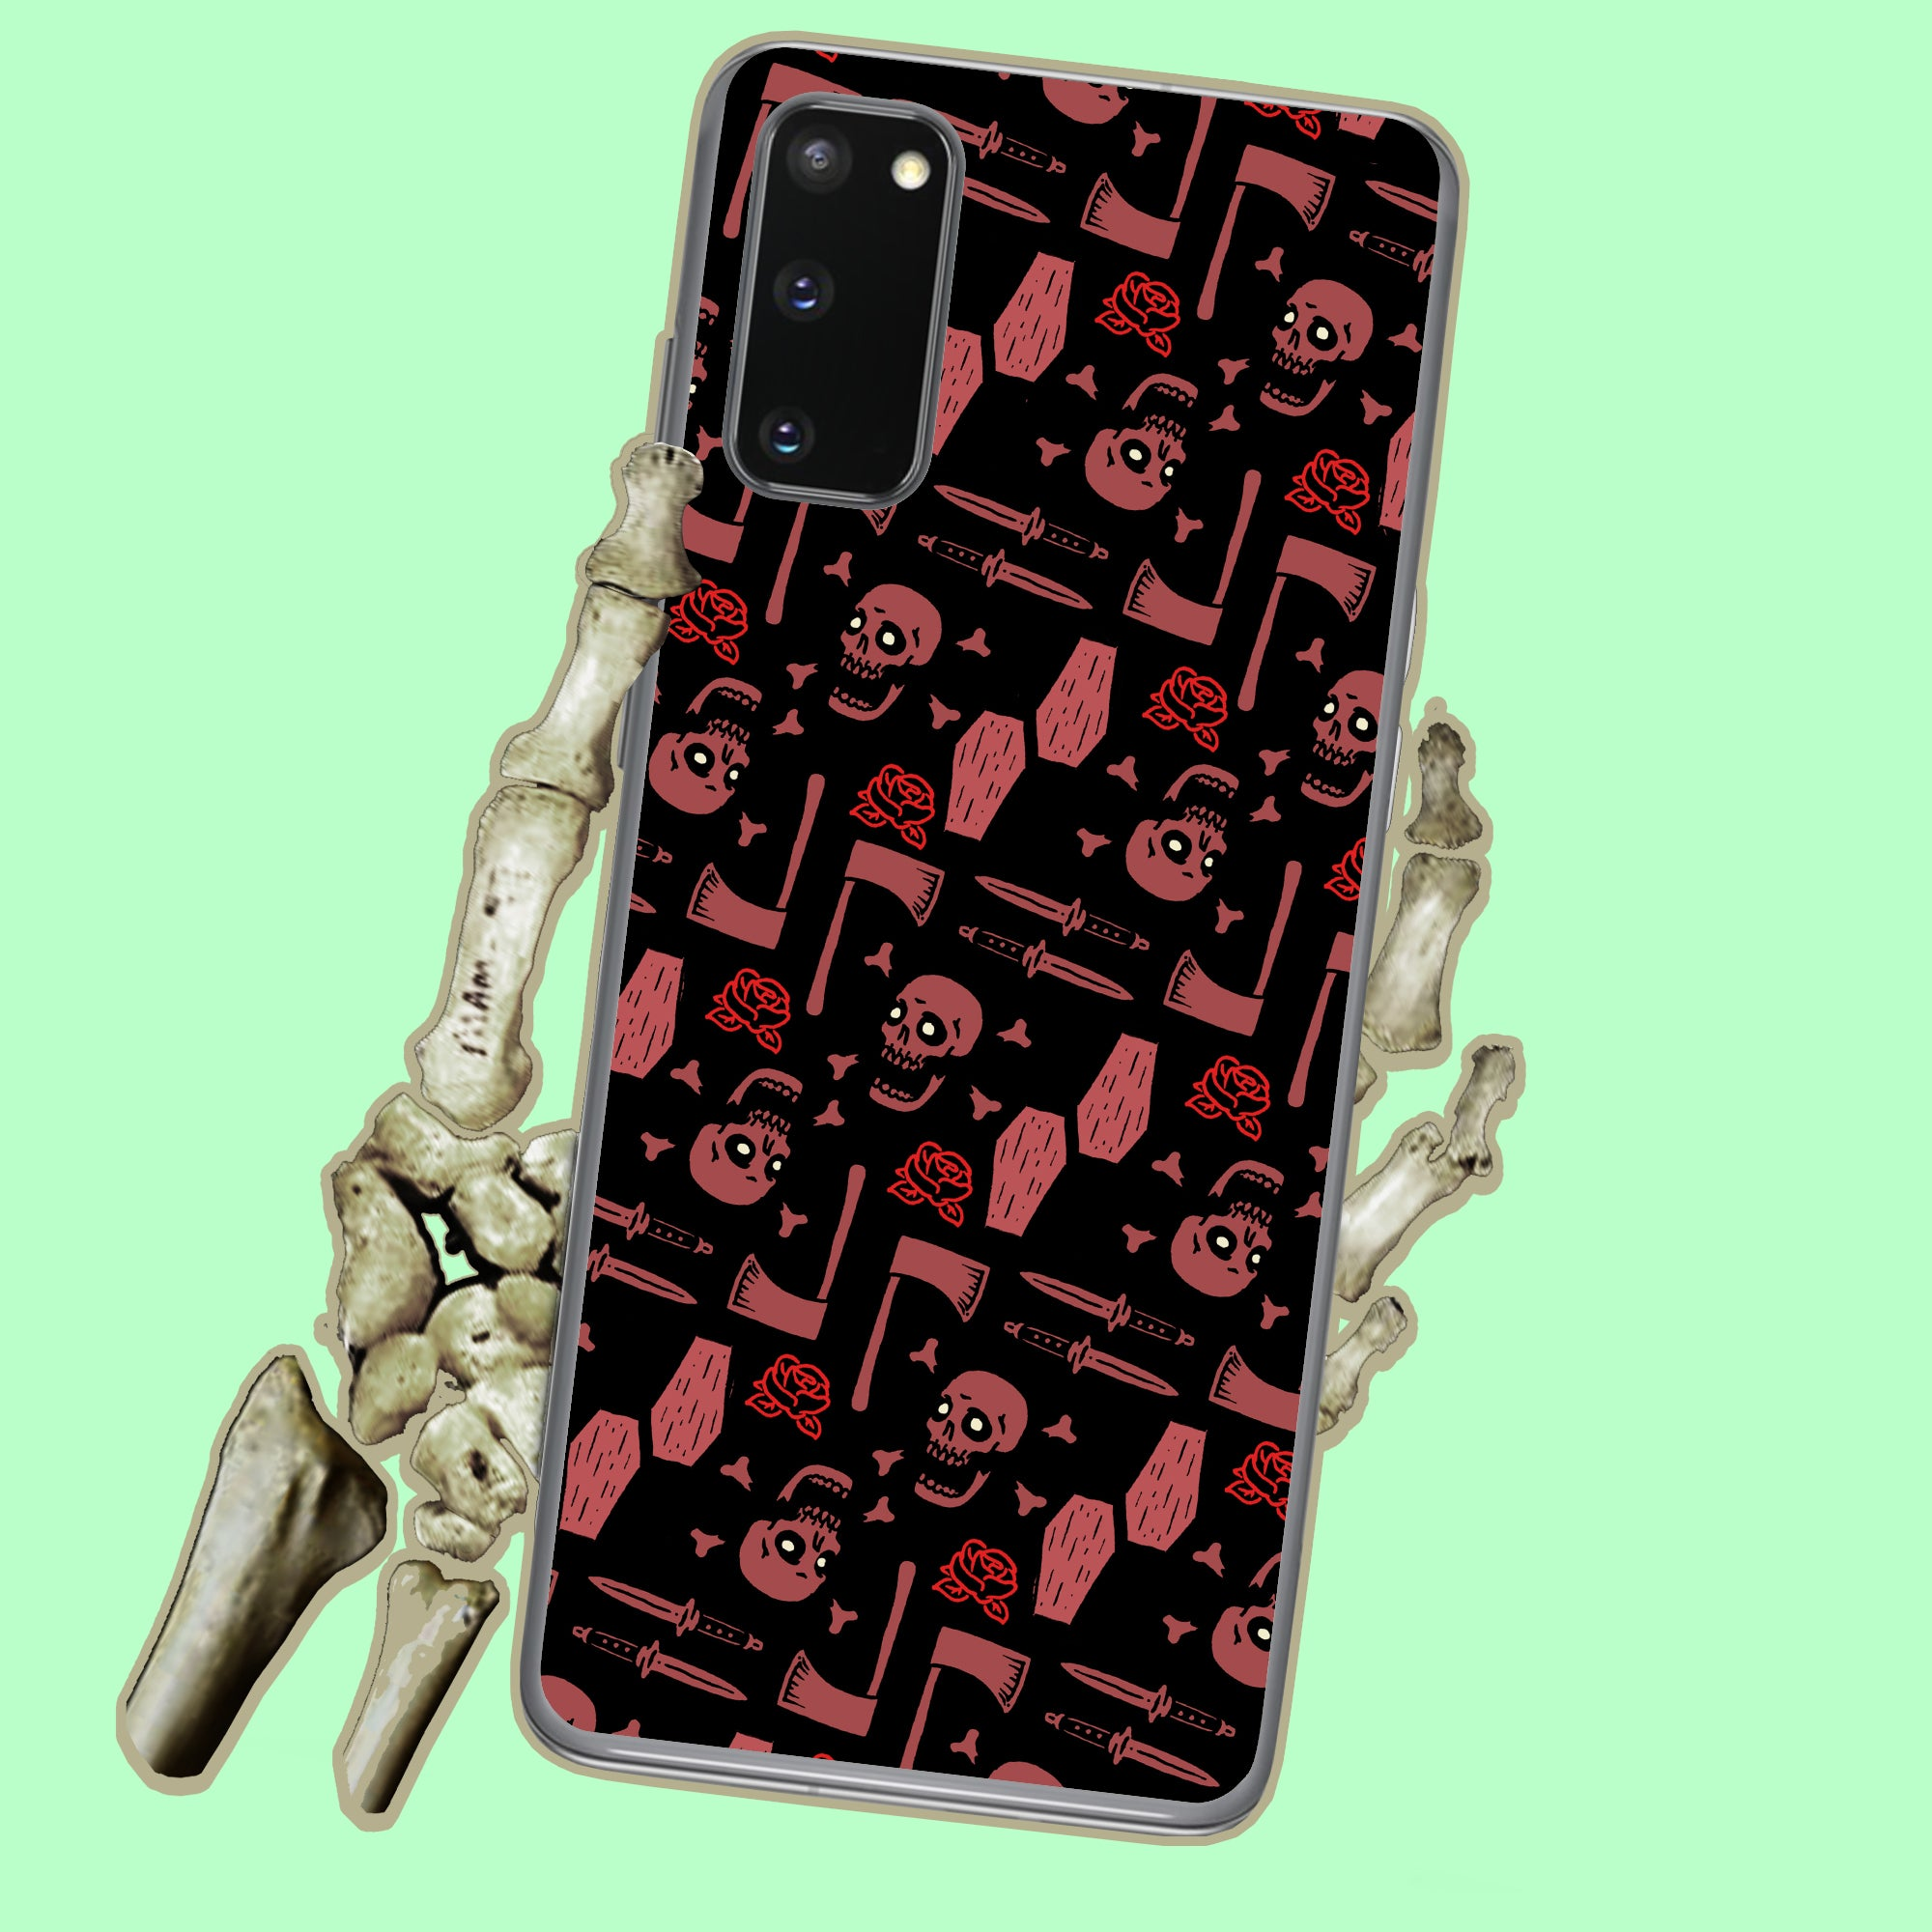 True Crime Murderino Samsung Case